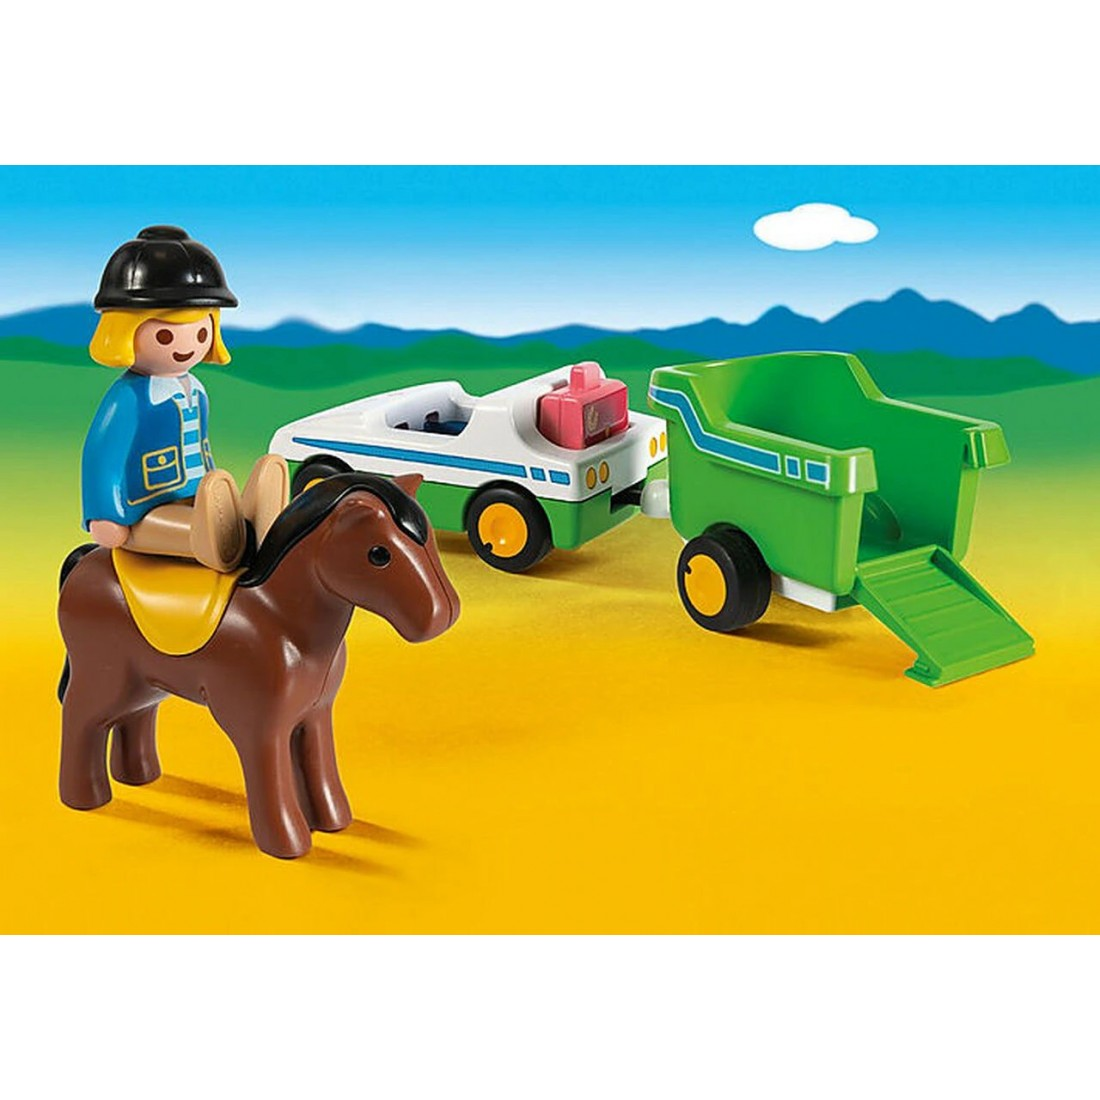 playmobil-123-car-with-horse-trailer (1)